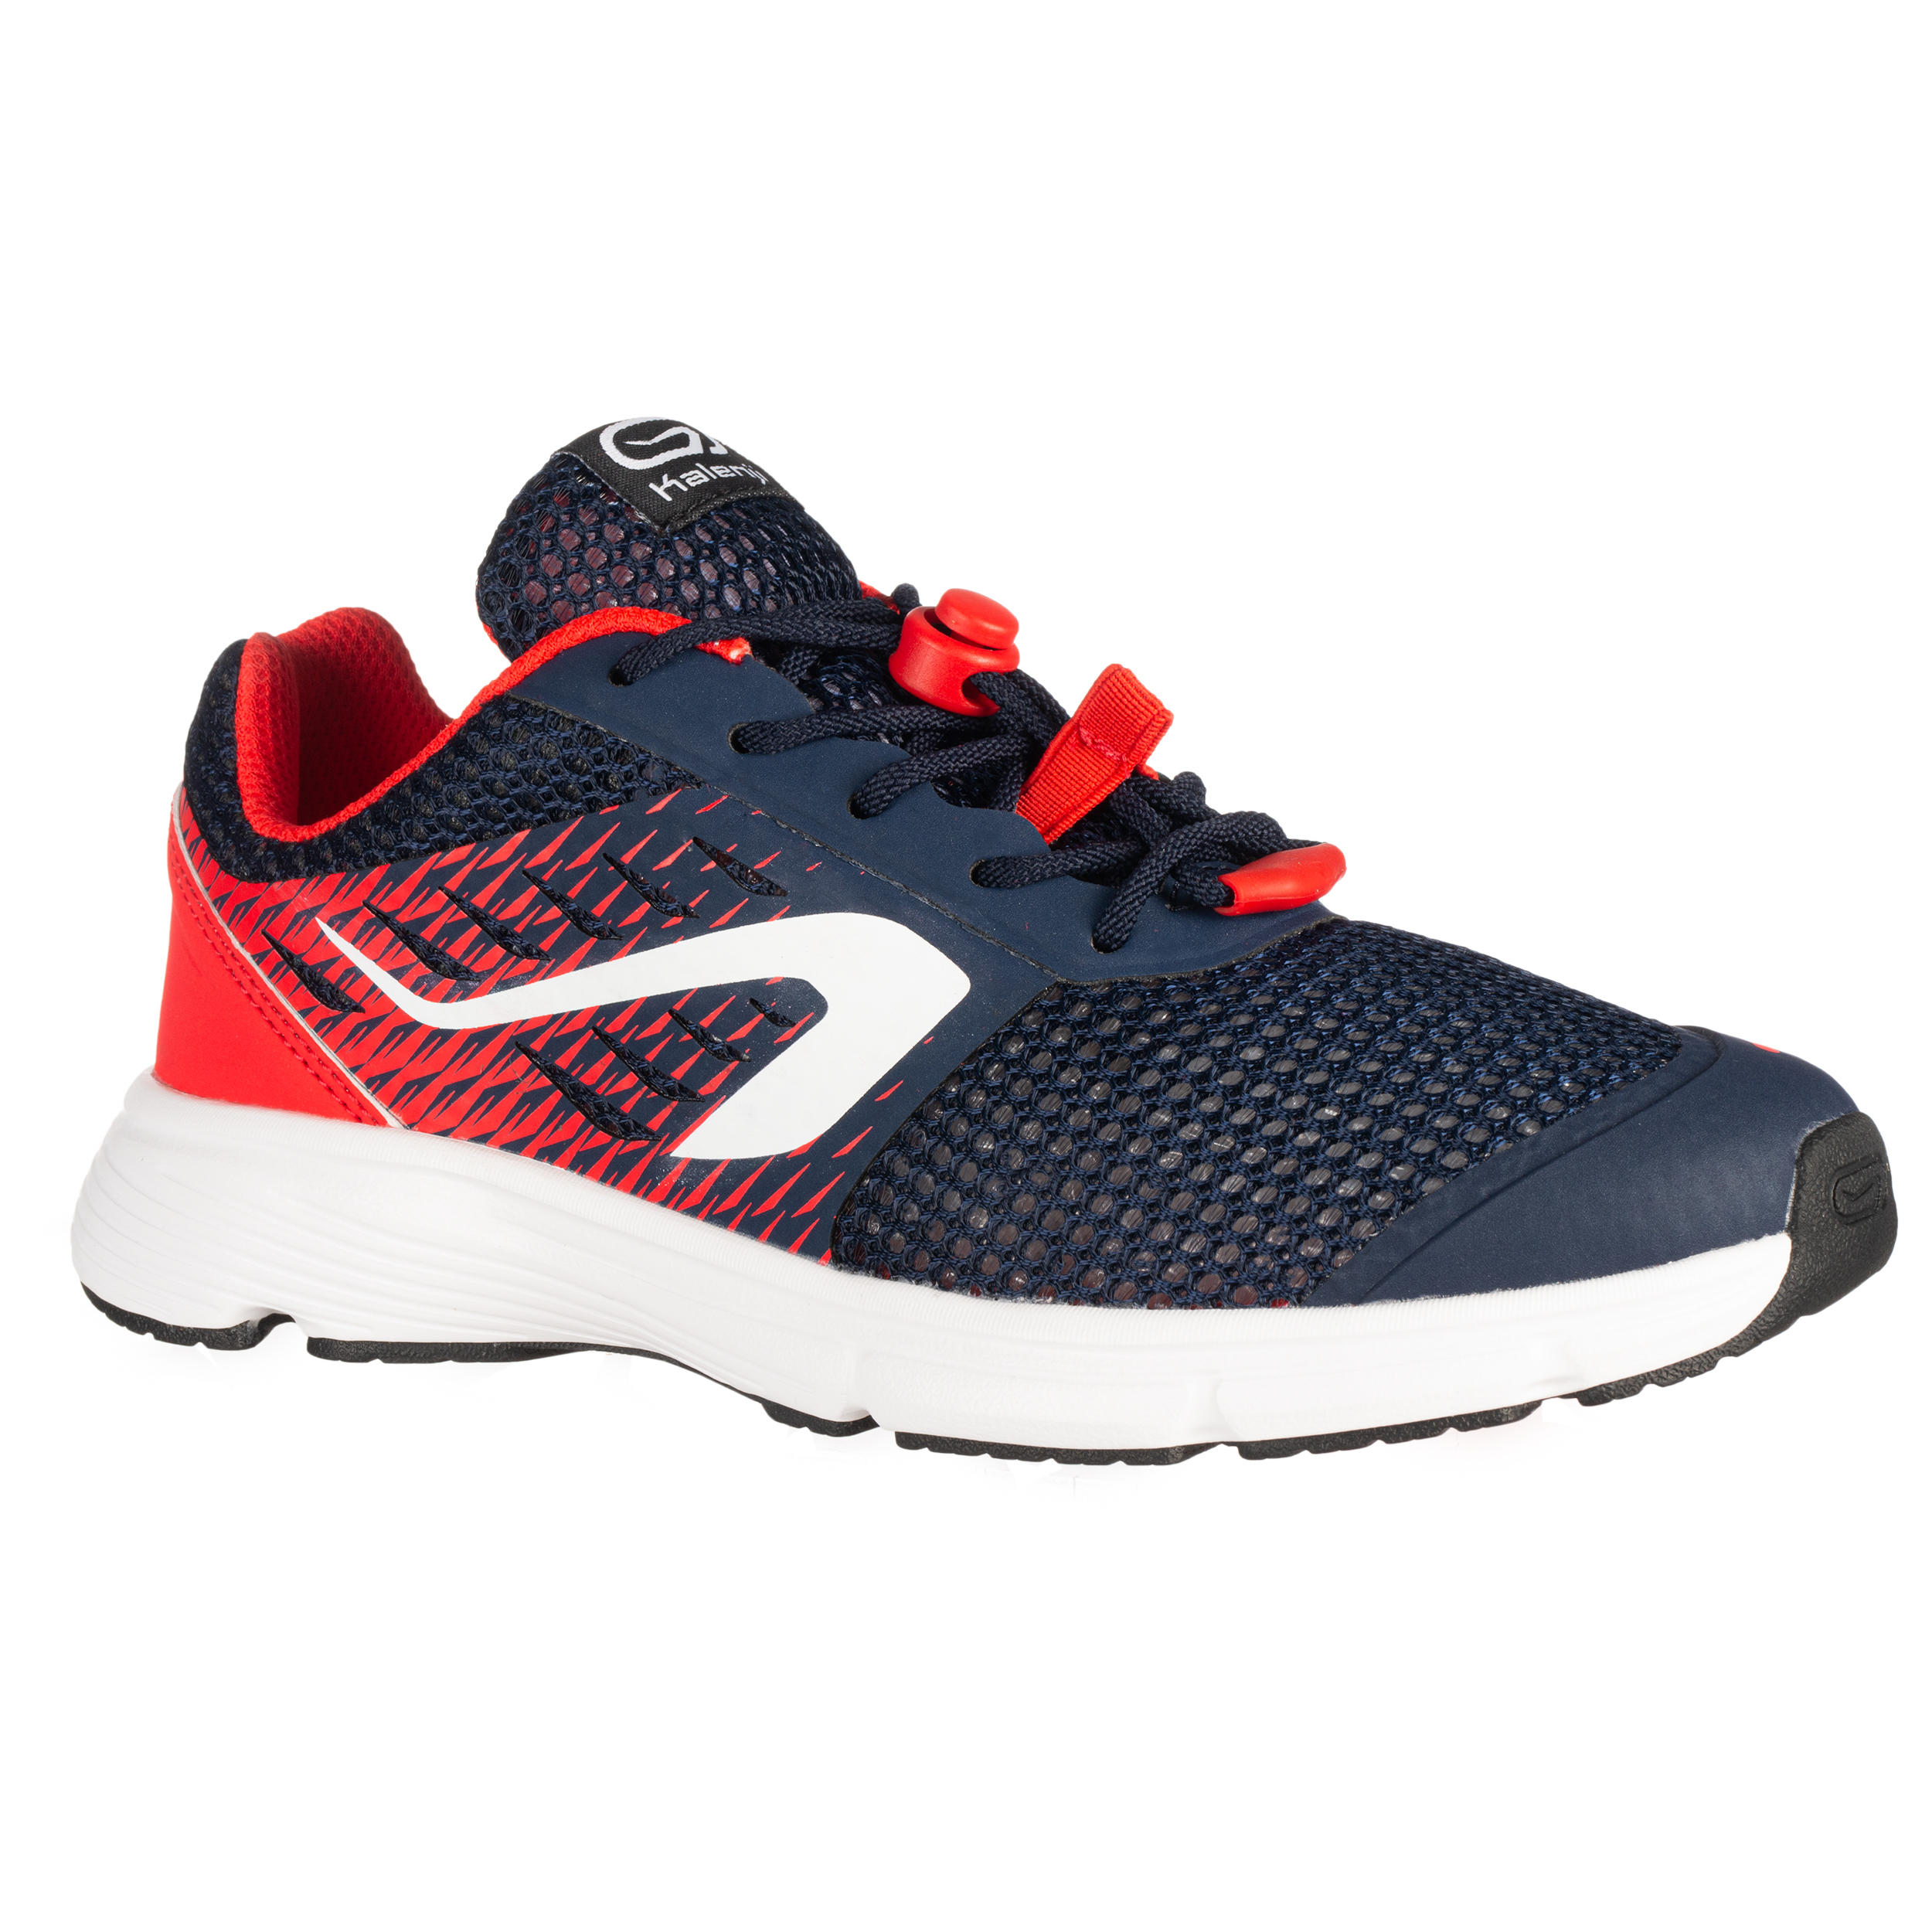 Shoes Clearance Sale Buy Online at